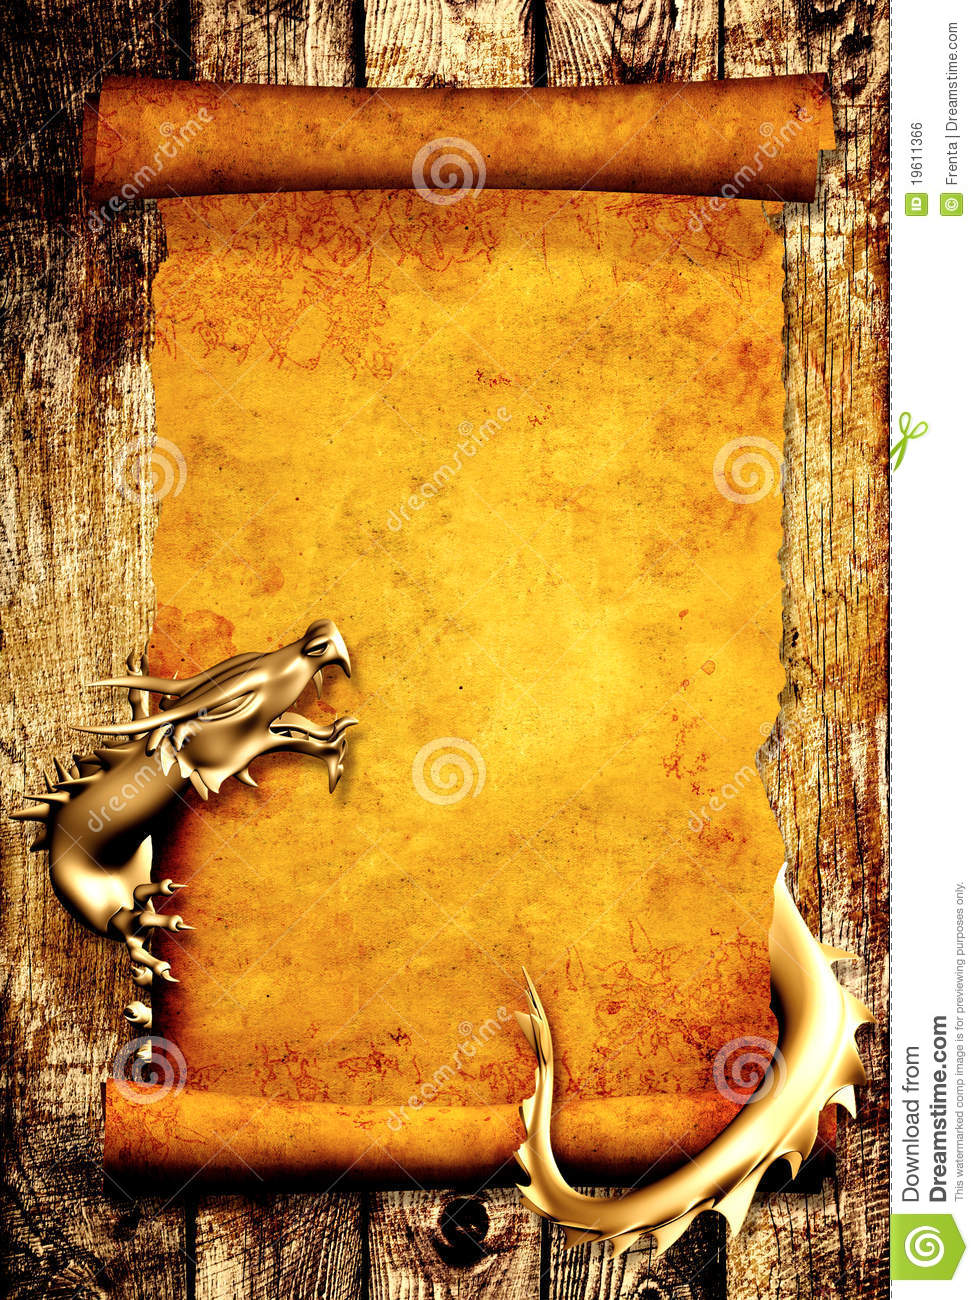 3d Scroll Of Parchment Photo: Dragon And Scroll Of Old Parchment Royalty Free Stock